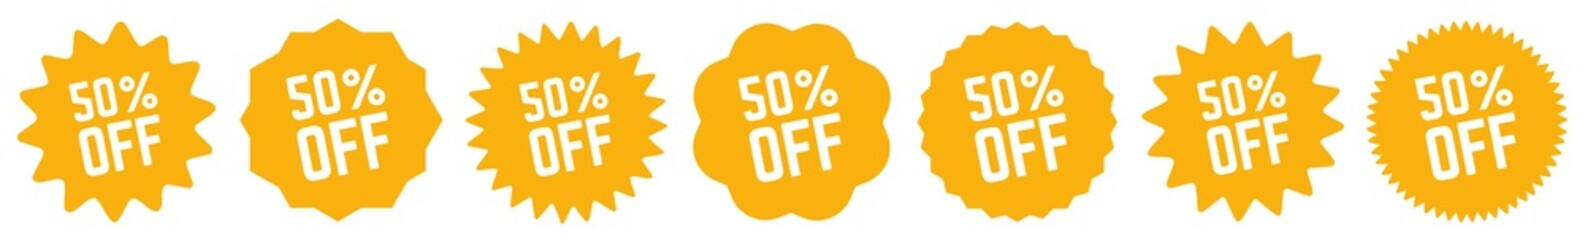 50 Percent OFF Discount Tag Orange   Special Offer Icon   Sale Sticker   Deal Label   Variations